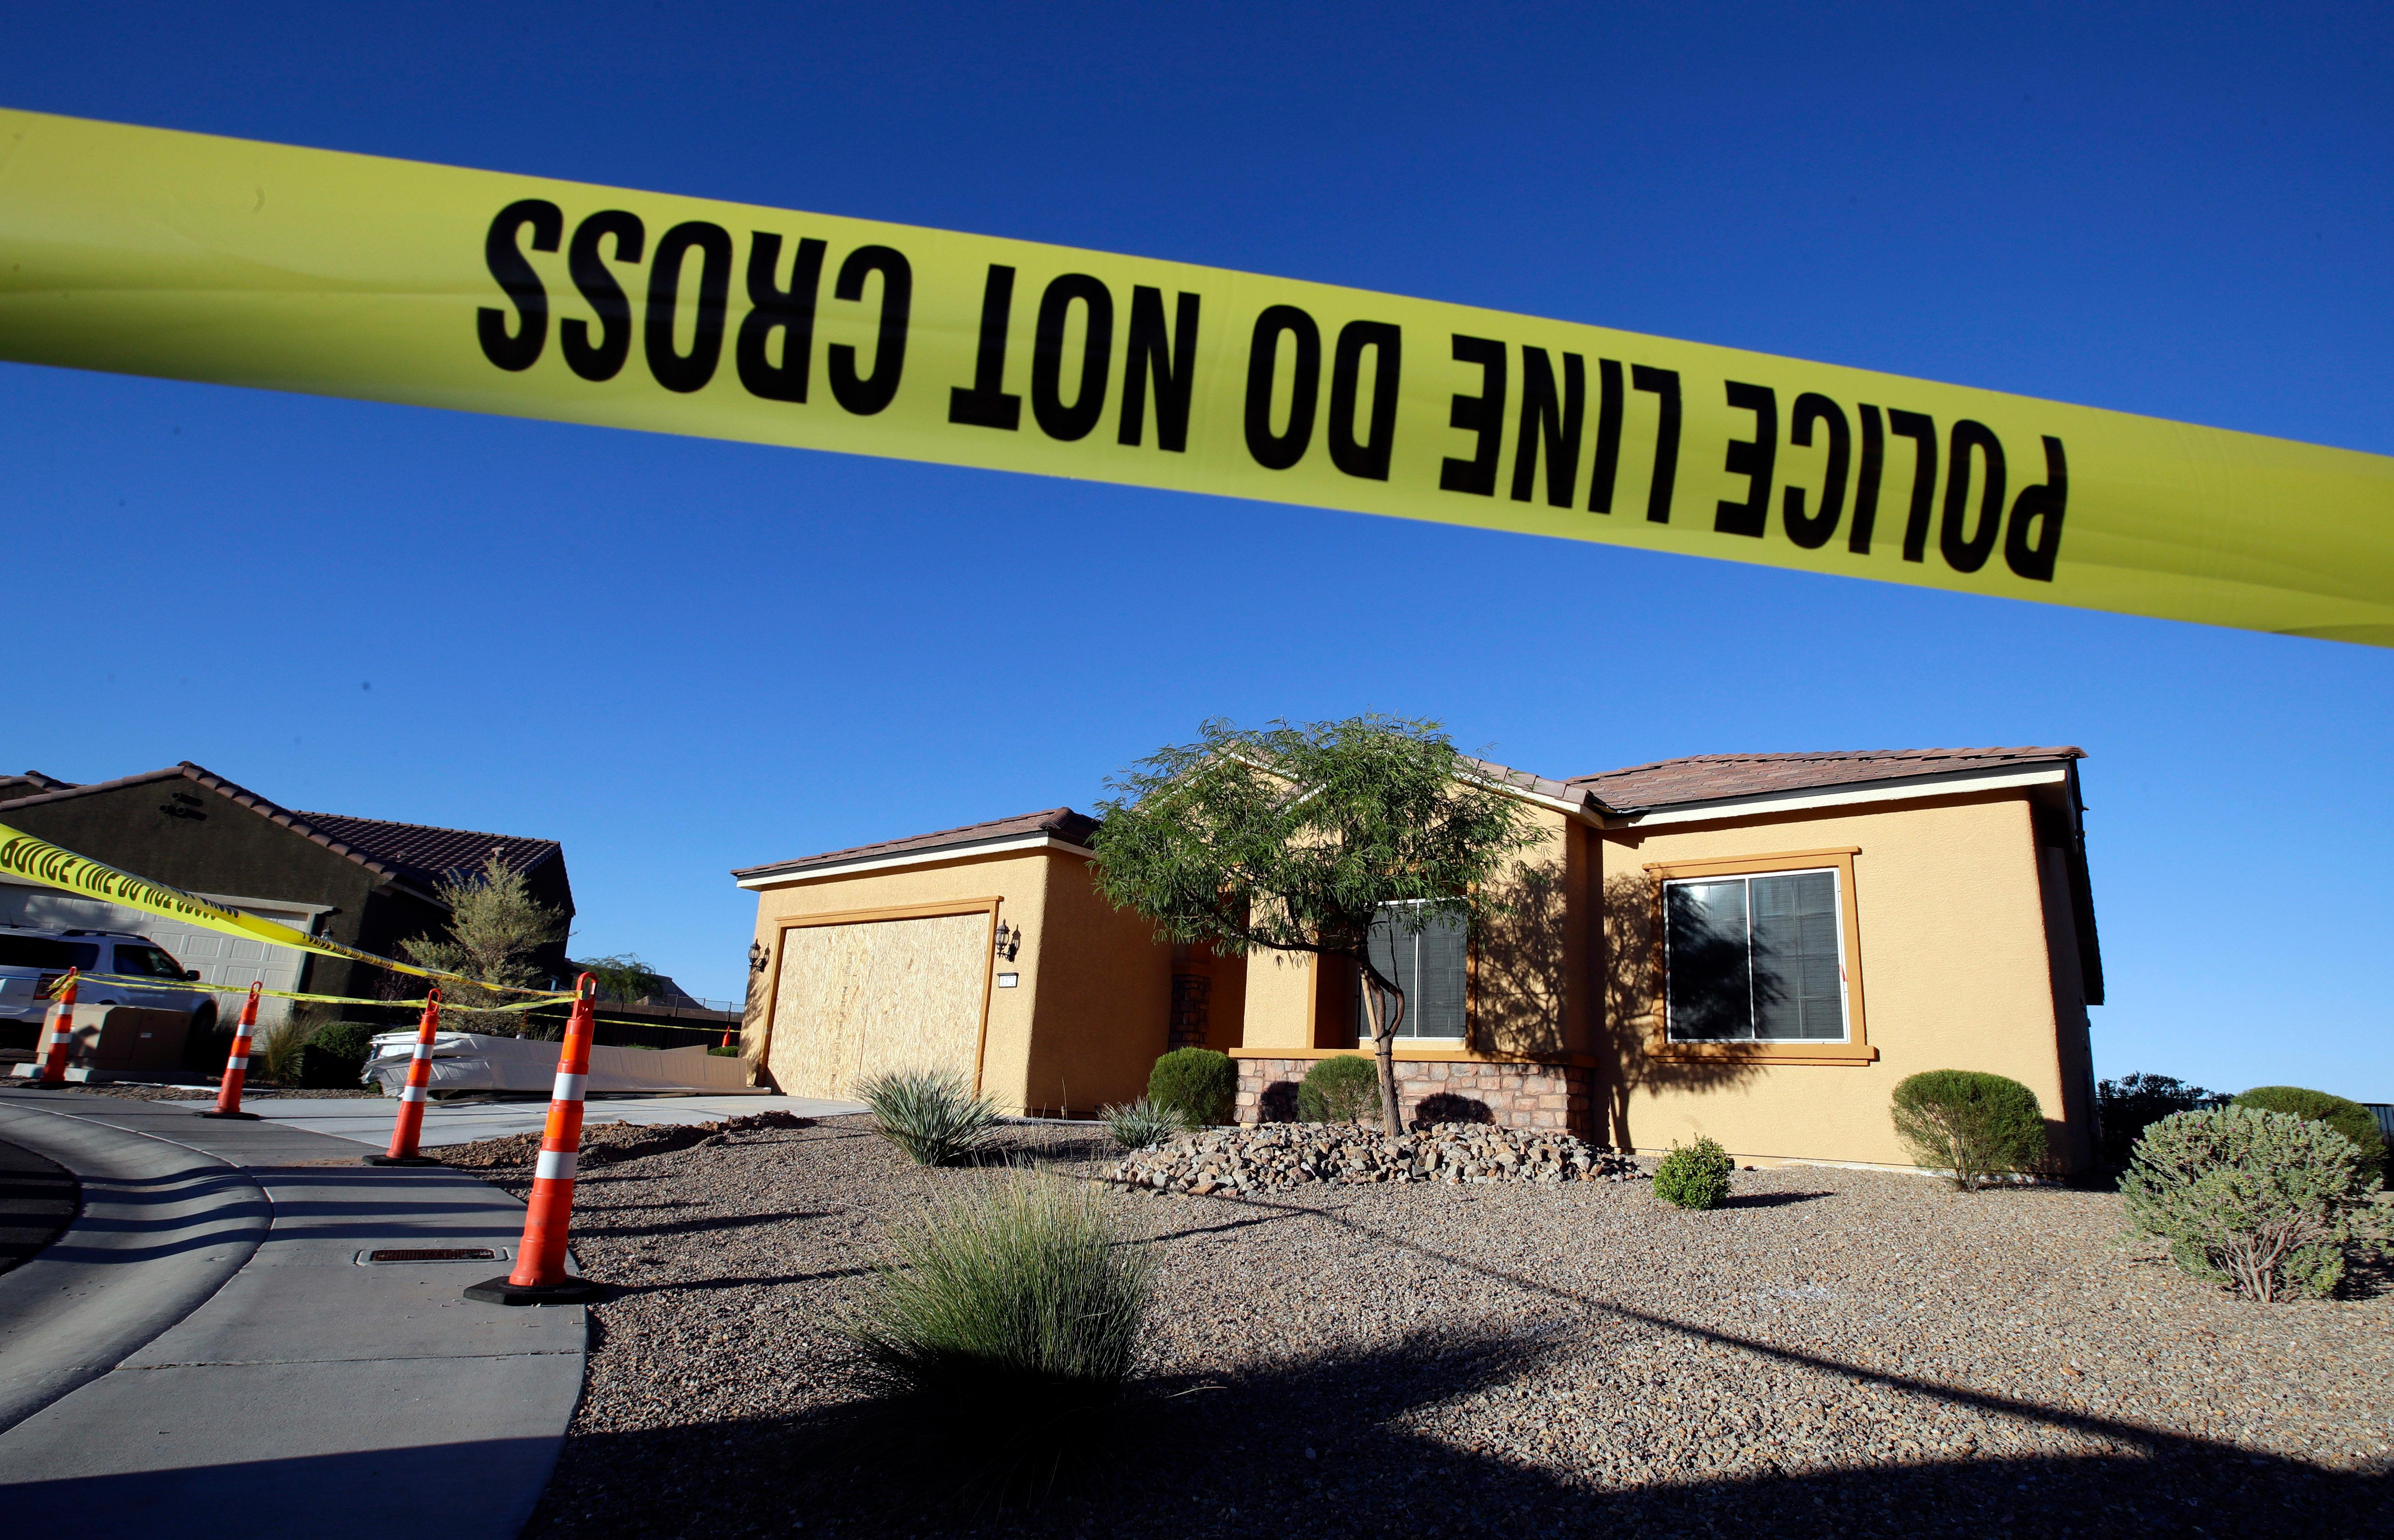 Police tape blocks off the home of Stephen Craig Paddock on Monday, Oct. 2, 2017, in Mesquite, Nev. Paddock killed dozens and injured hundreds on Sunday night when he opened fire at an outdoor country music festival in Las Vegas. Heavily armed police searched Paddock's home Monday. (AP Photo/Chris Carlson)